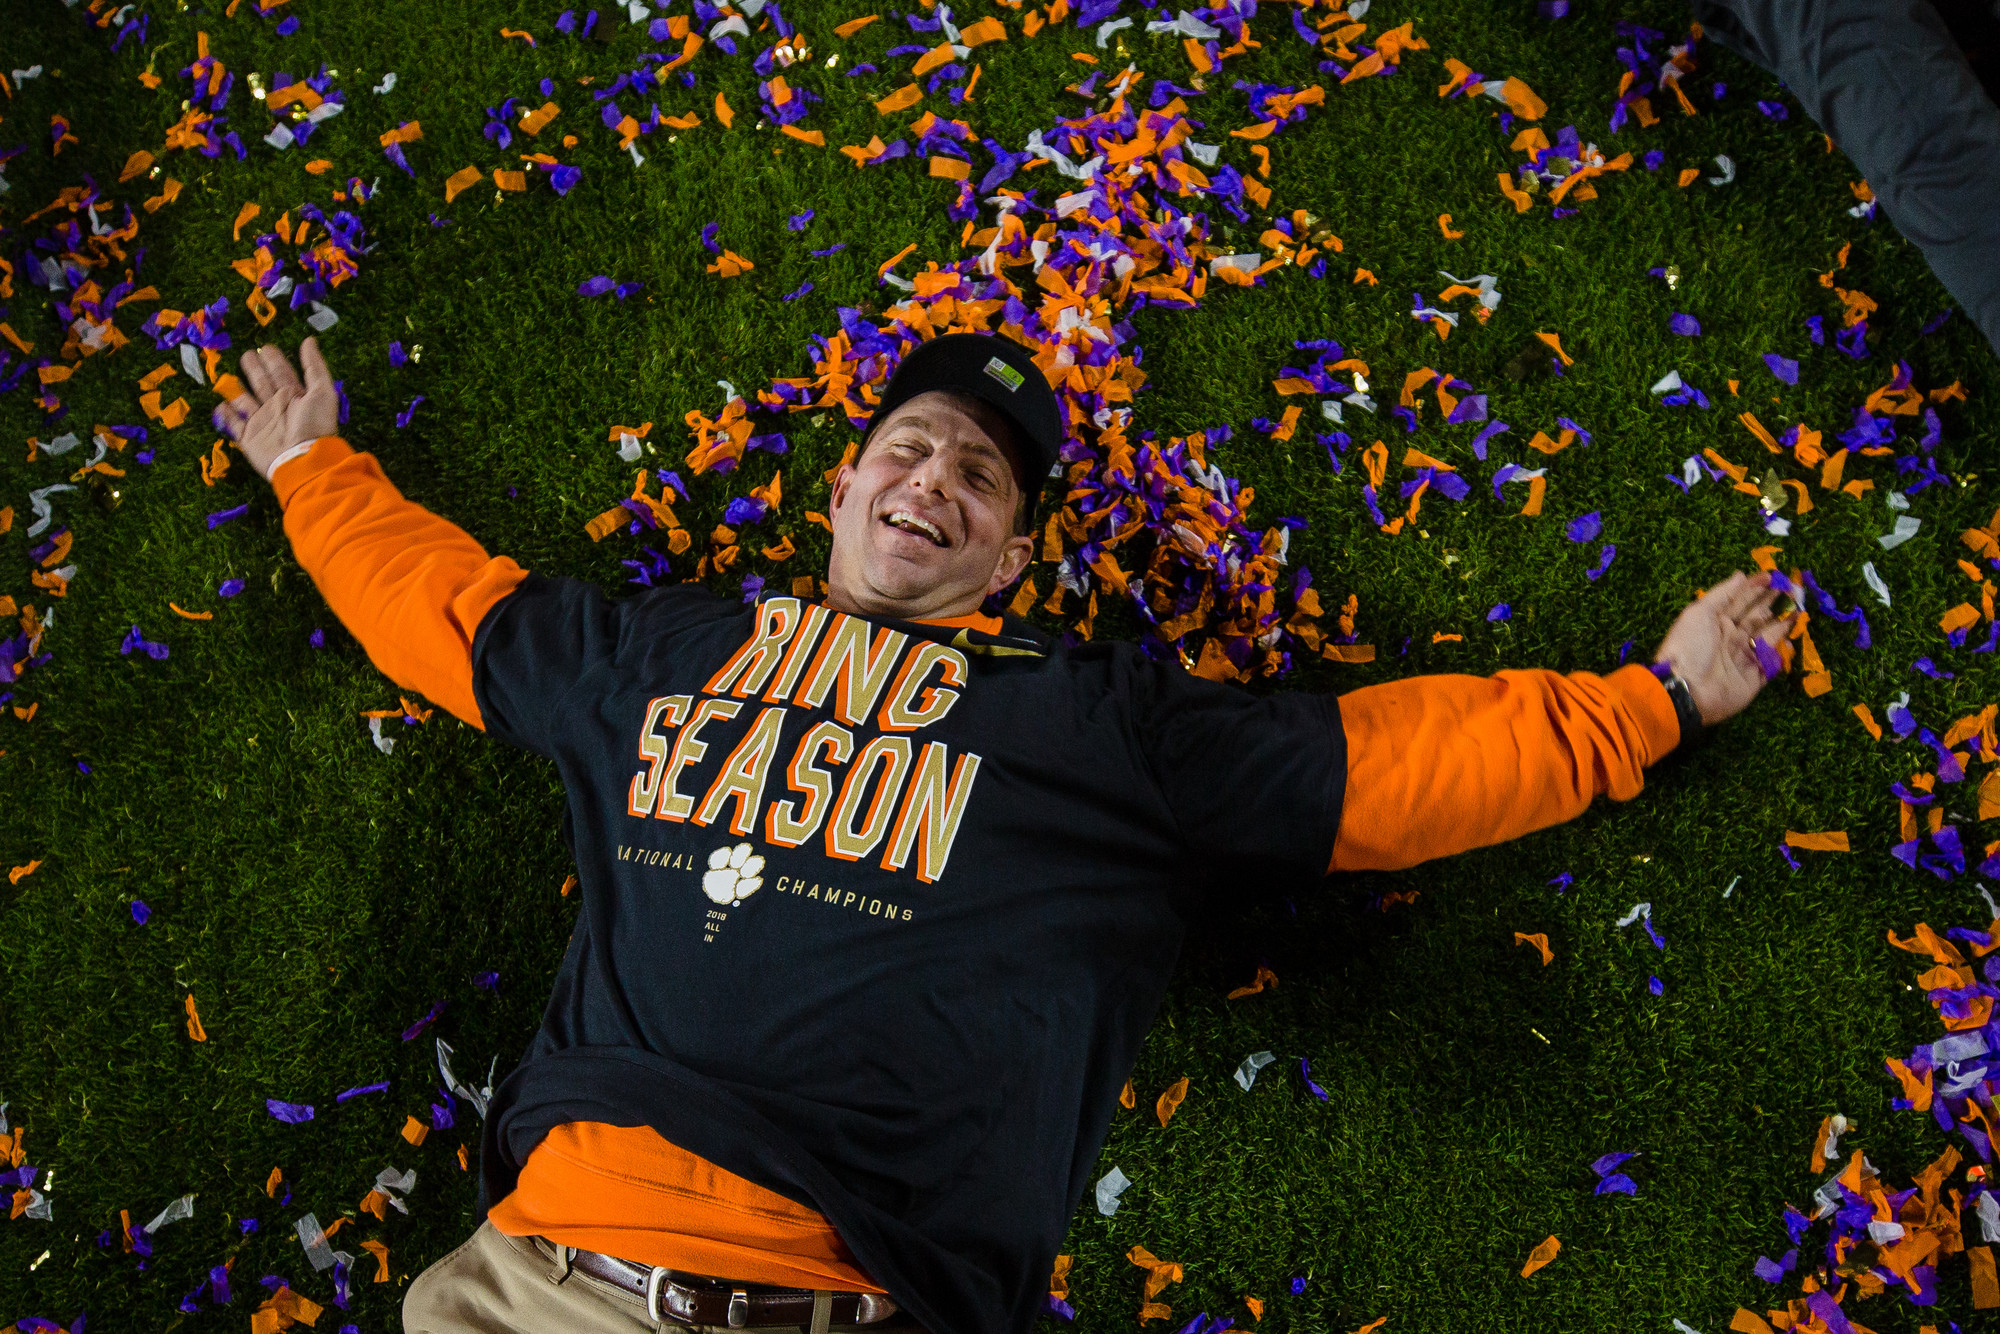 Clemson head coach Dabo Swinney celebrates on the field at Levi's Stadium after the Tigers routed Alabama to win the 2018 CFP National Championship in Santa Clara, California, on Monday, Jan. 7.